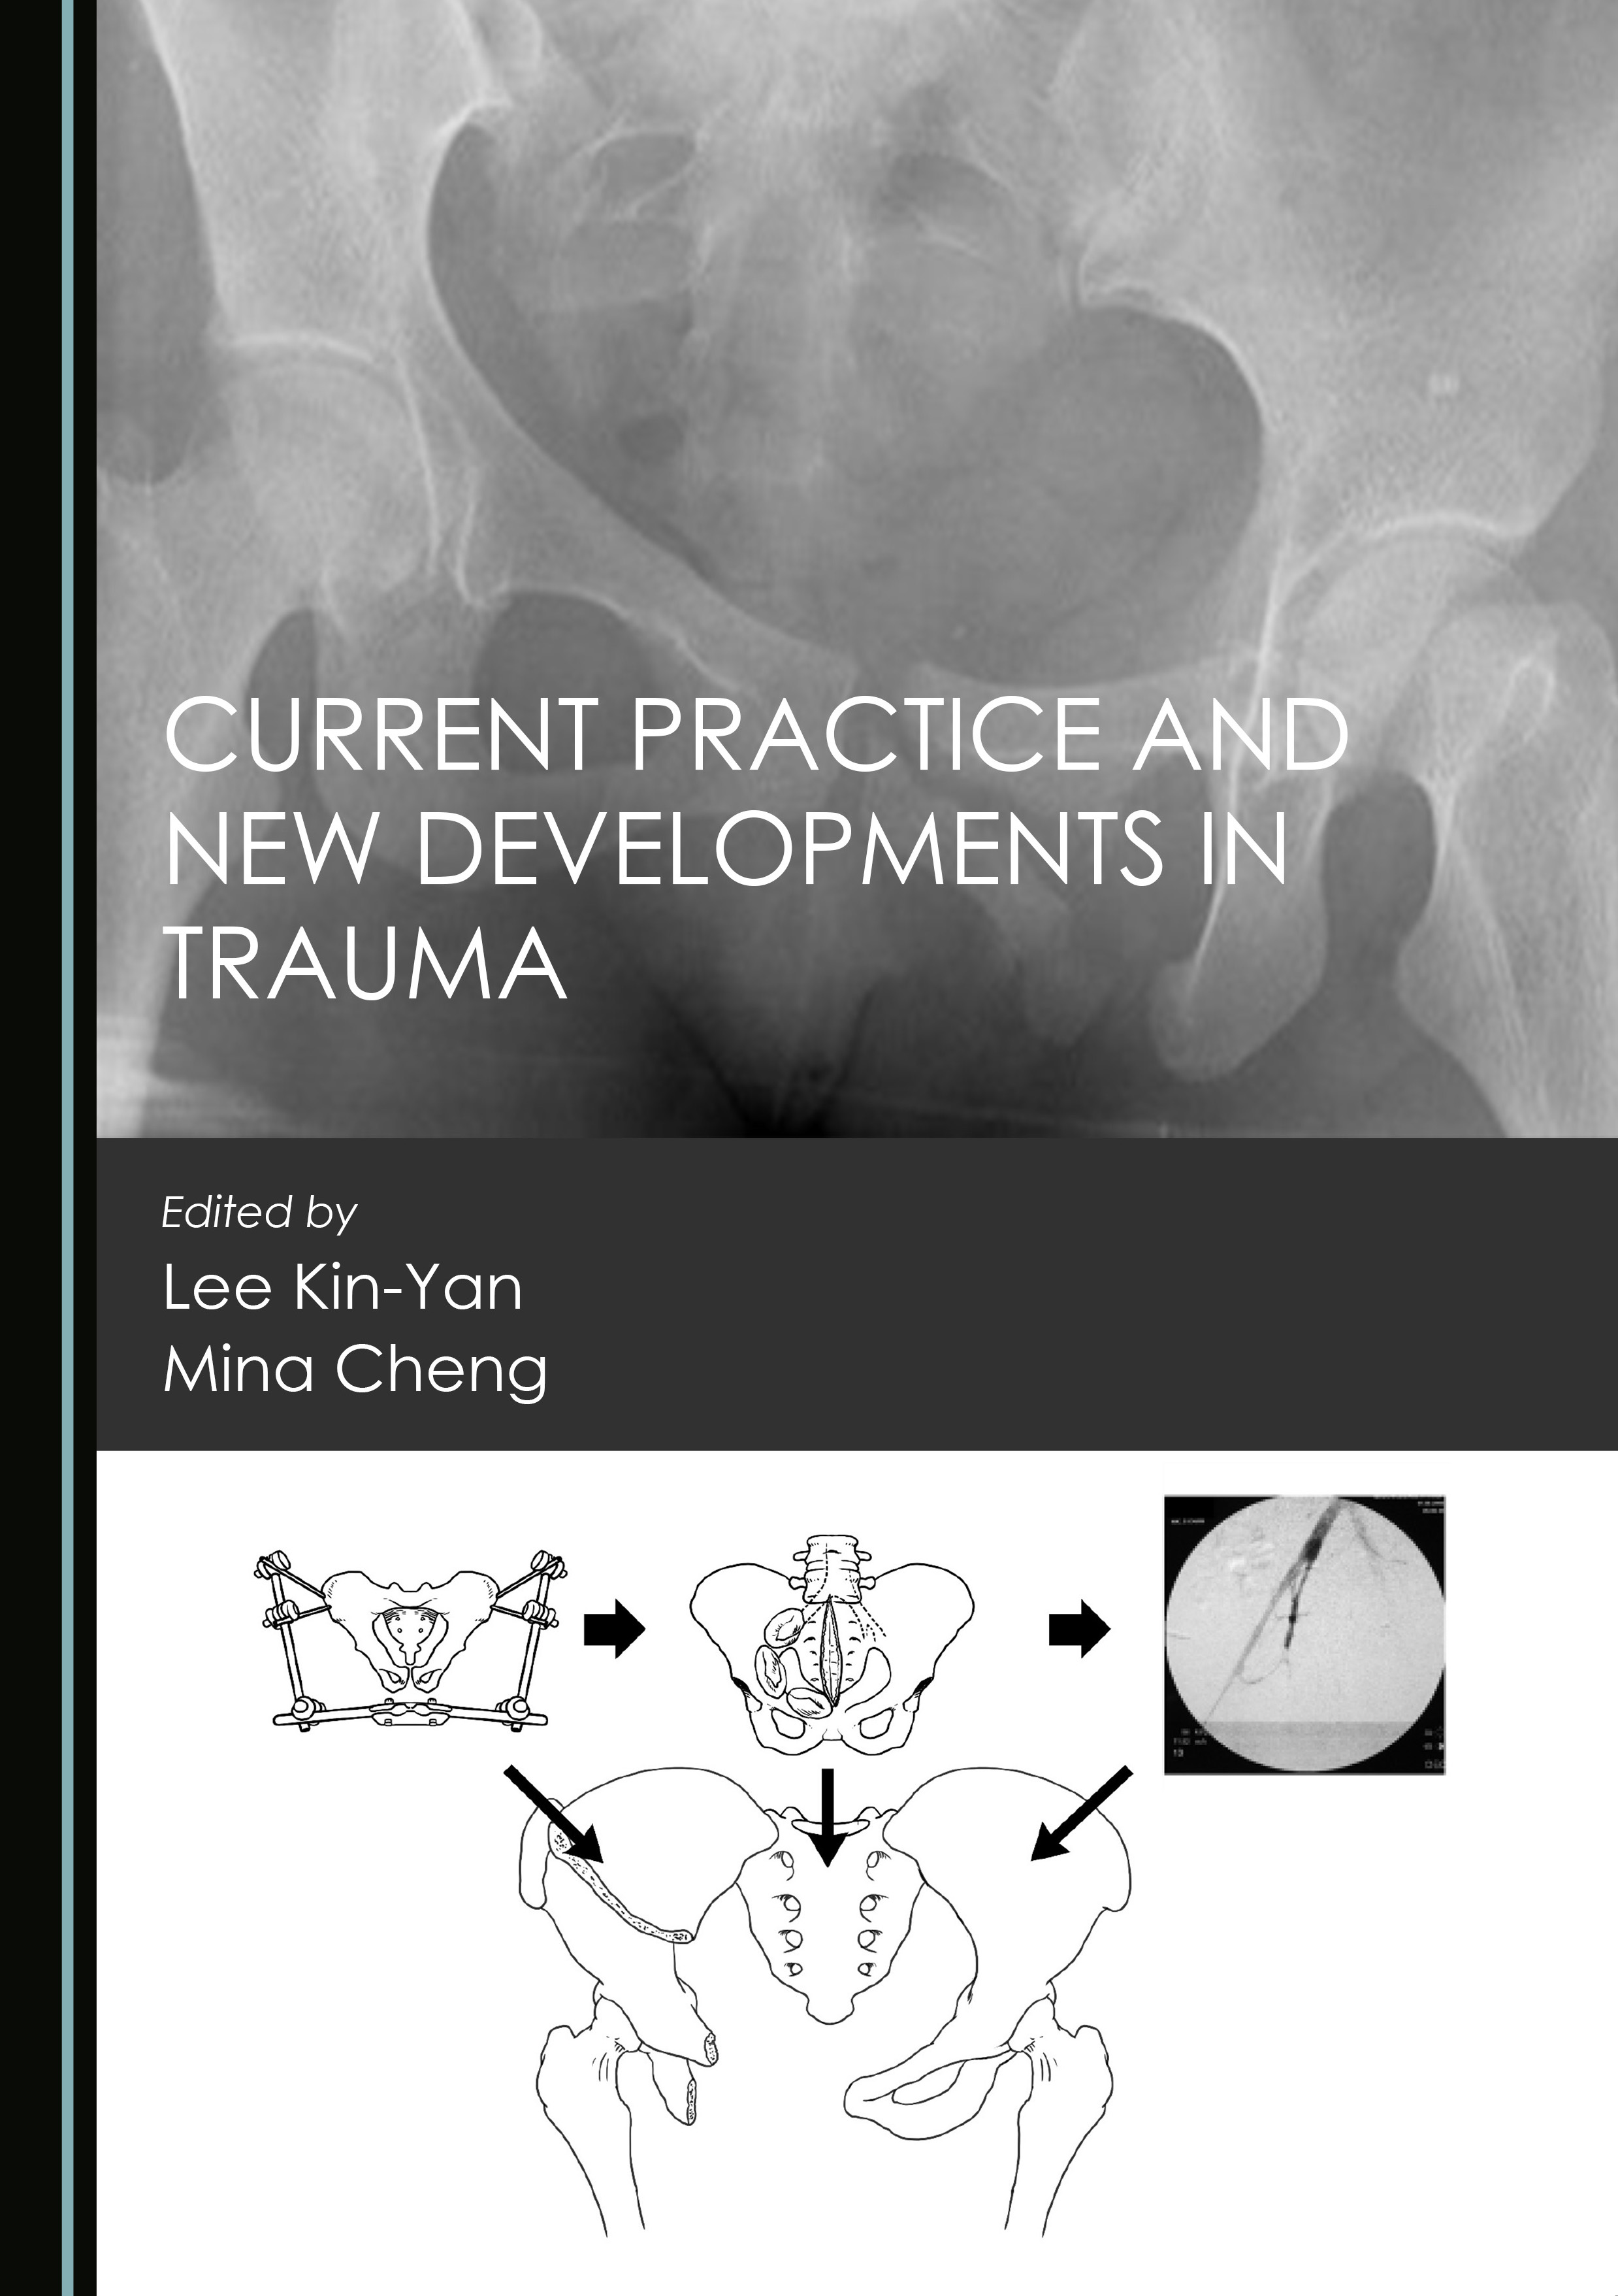 Current Practice and New Developments in Trauma